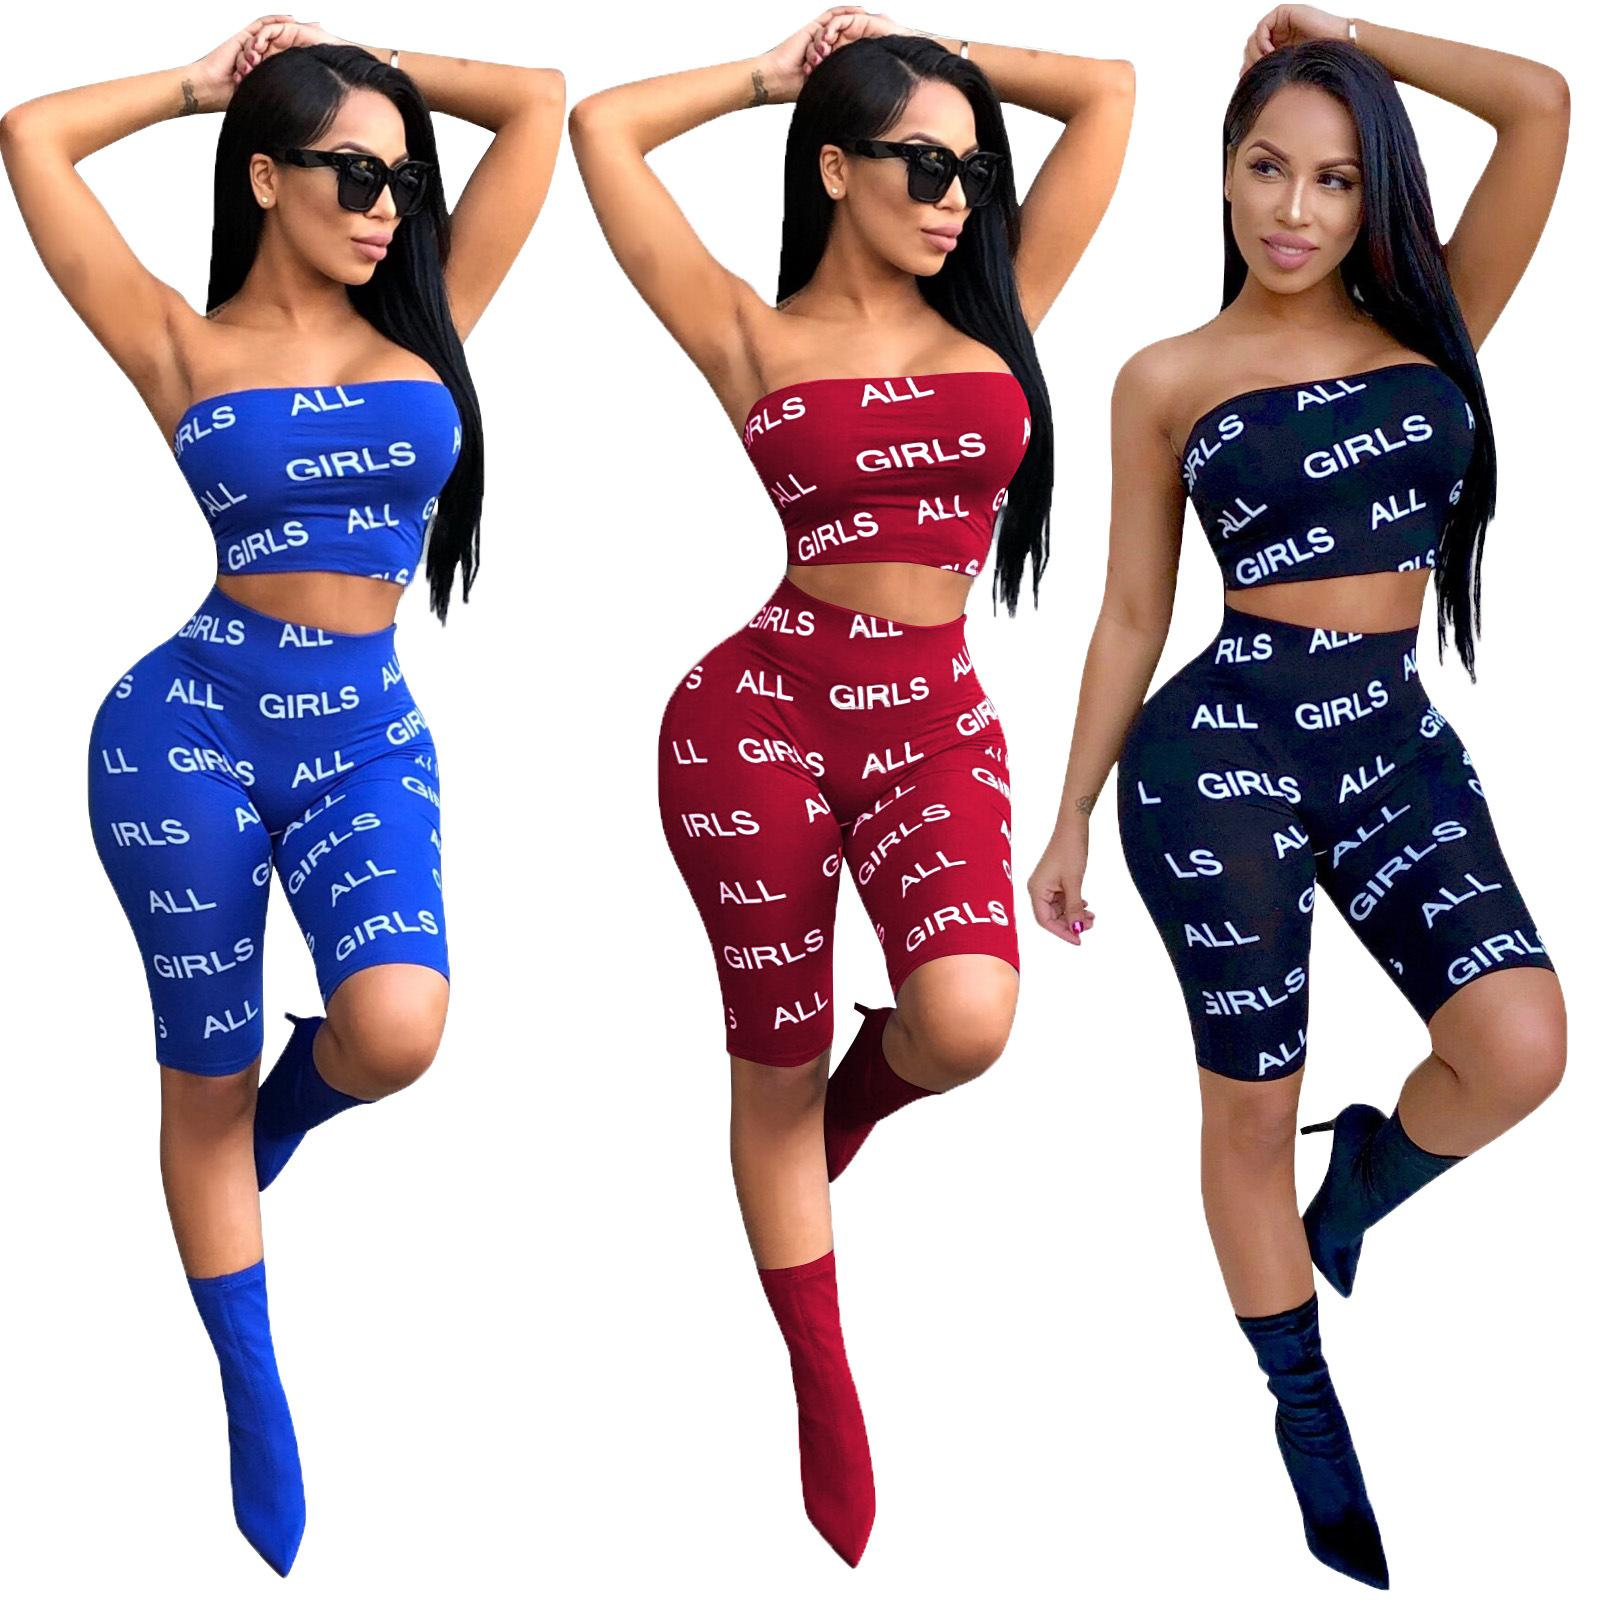 GIRLS Strapless Crop Top and Knee Length Leggings Two Piece Set